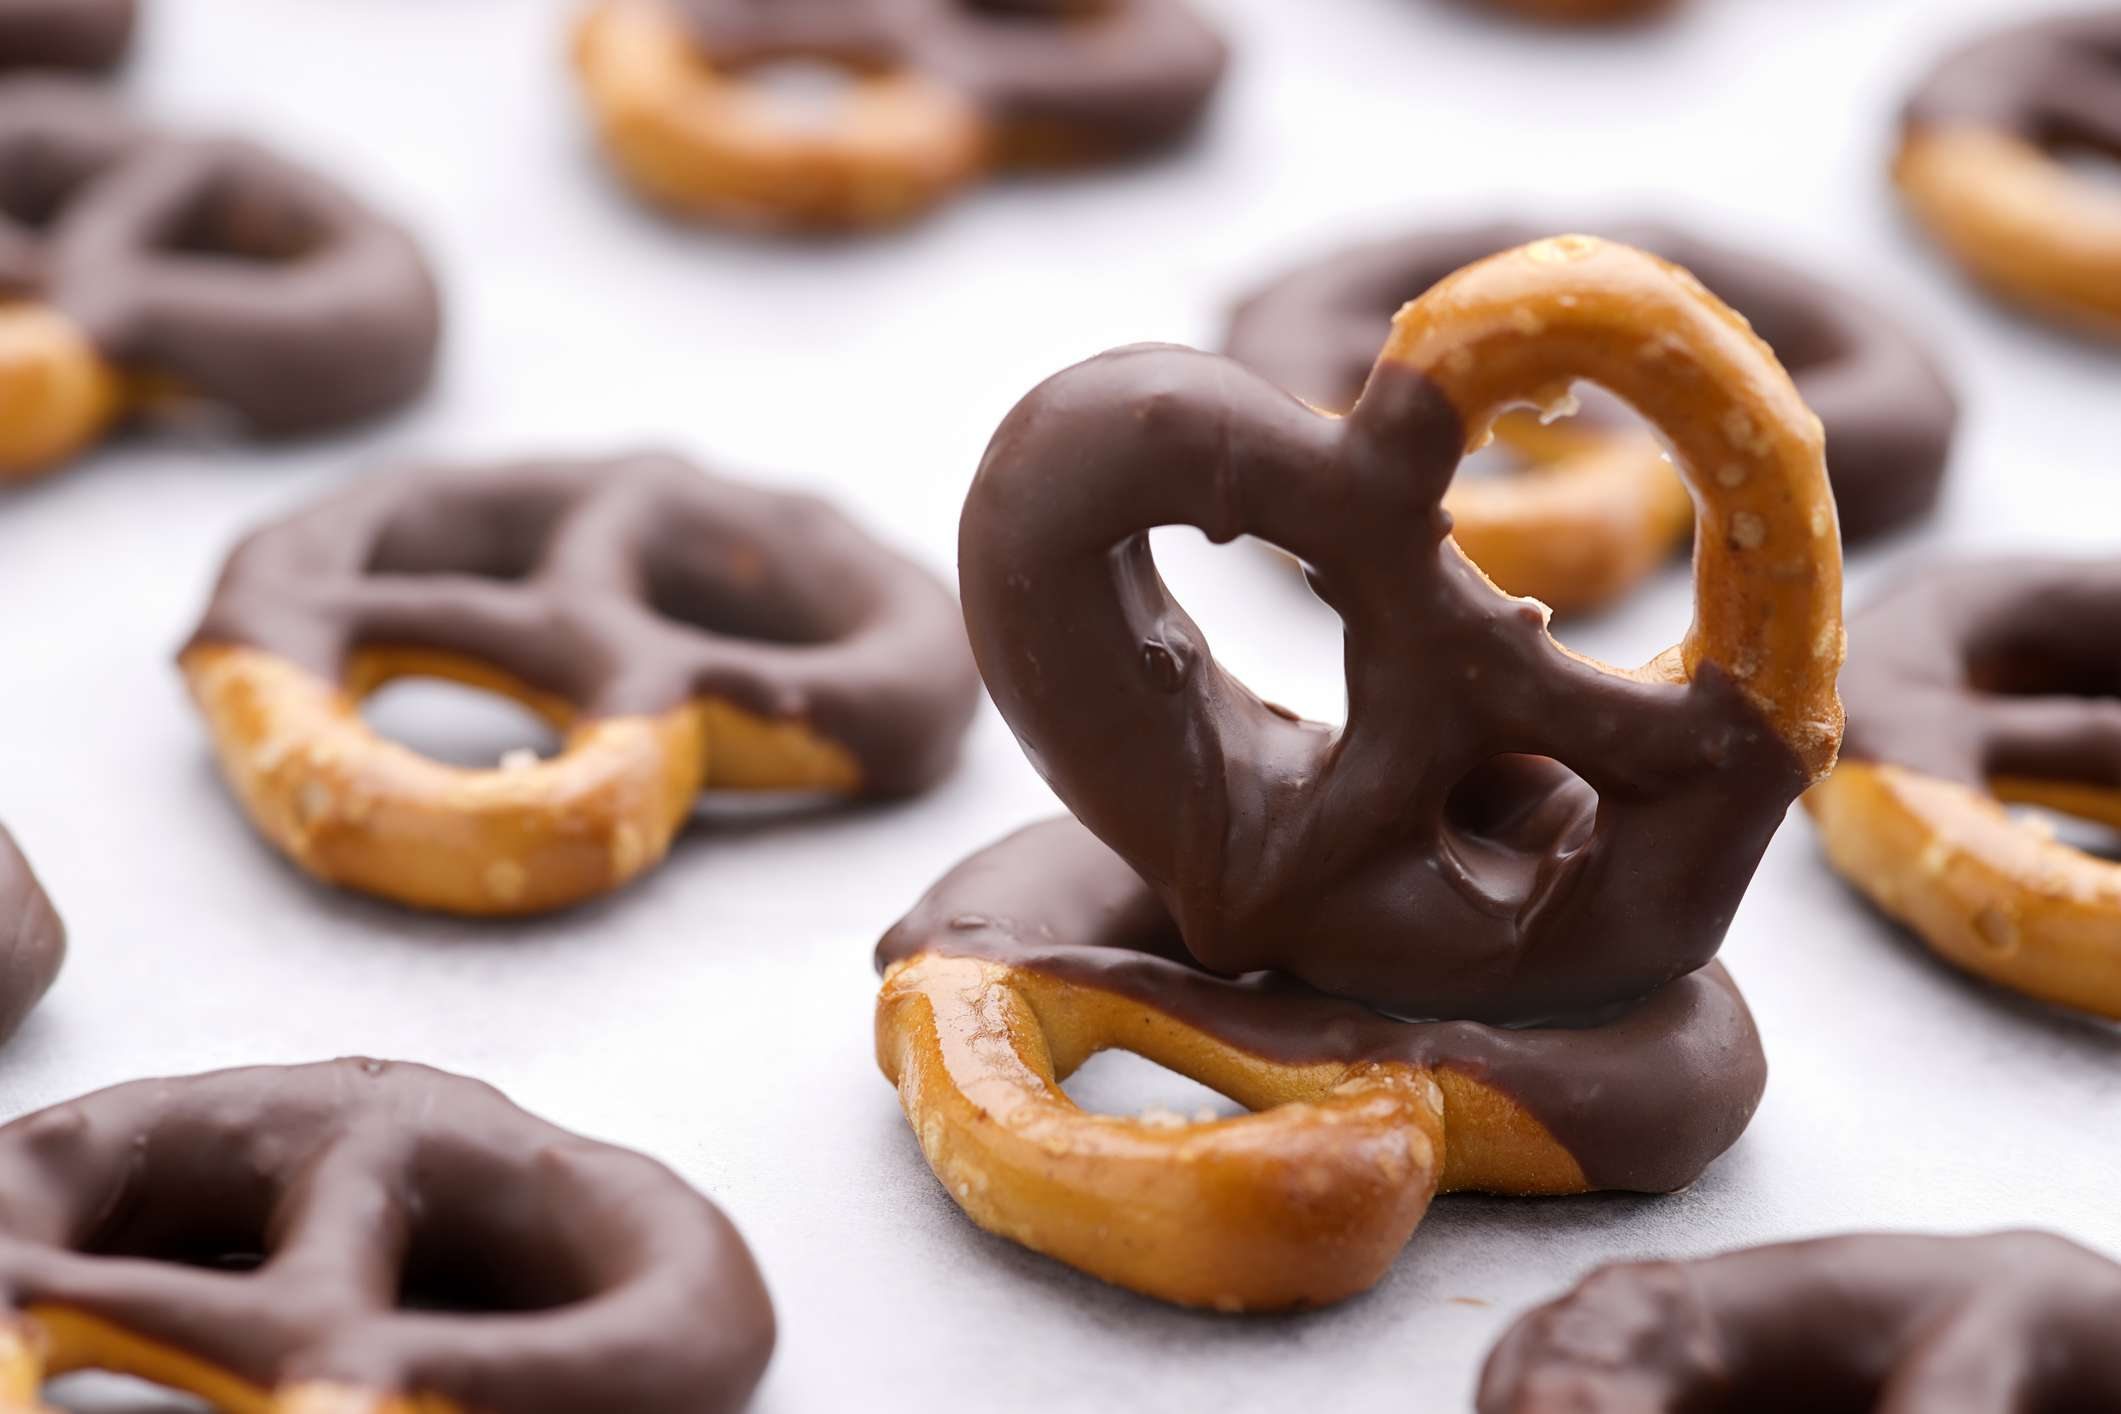 Chocolate dipped pretzels on a baking sheet